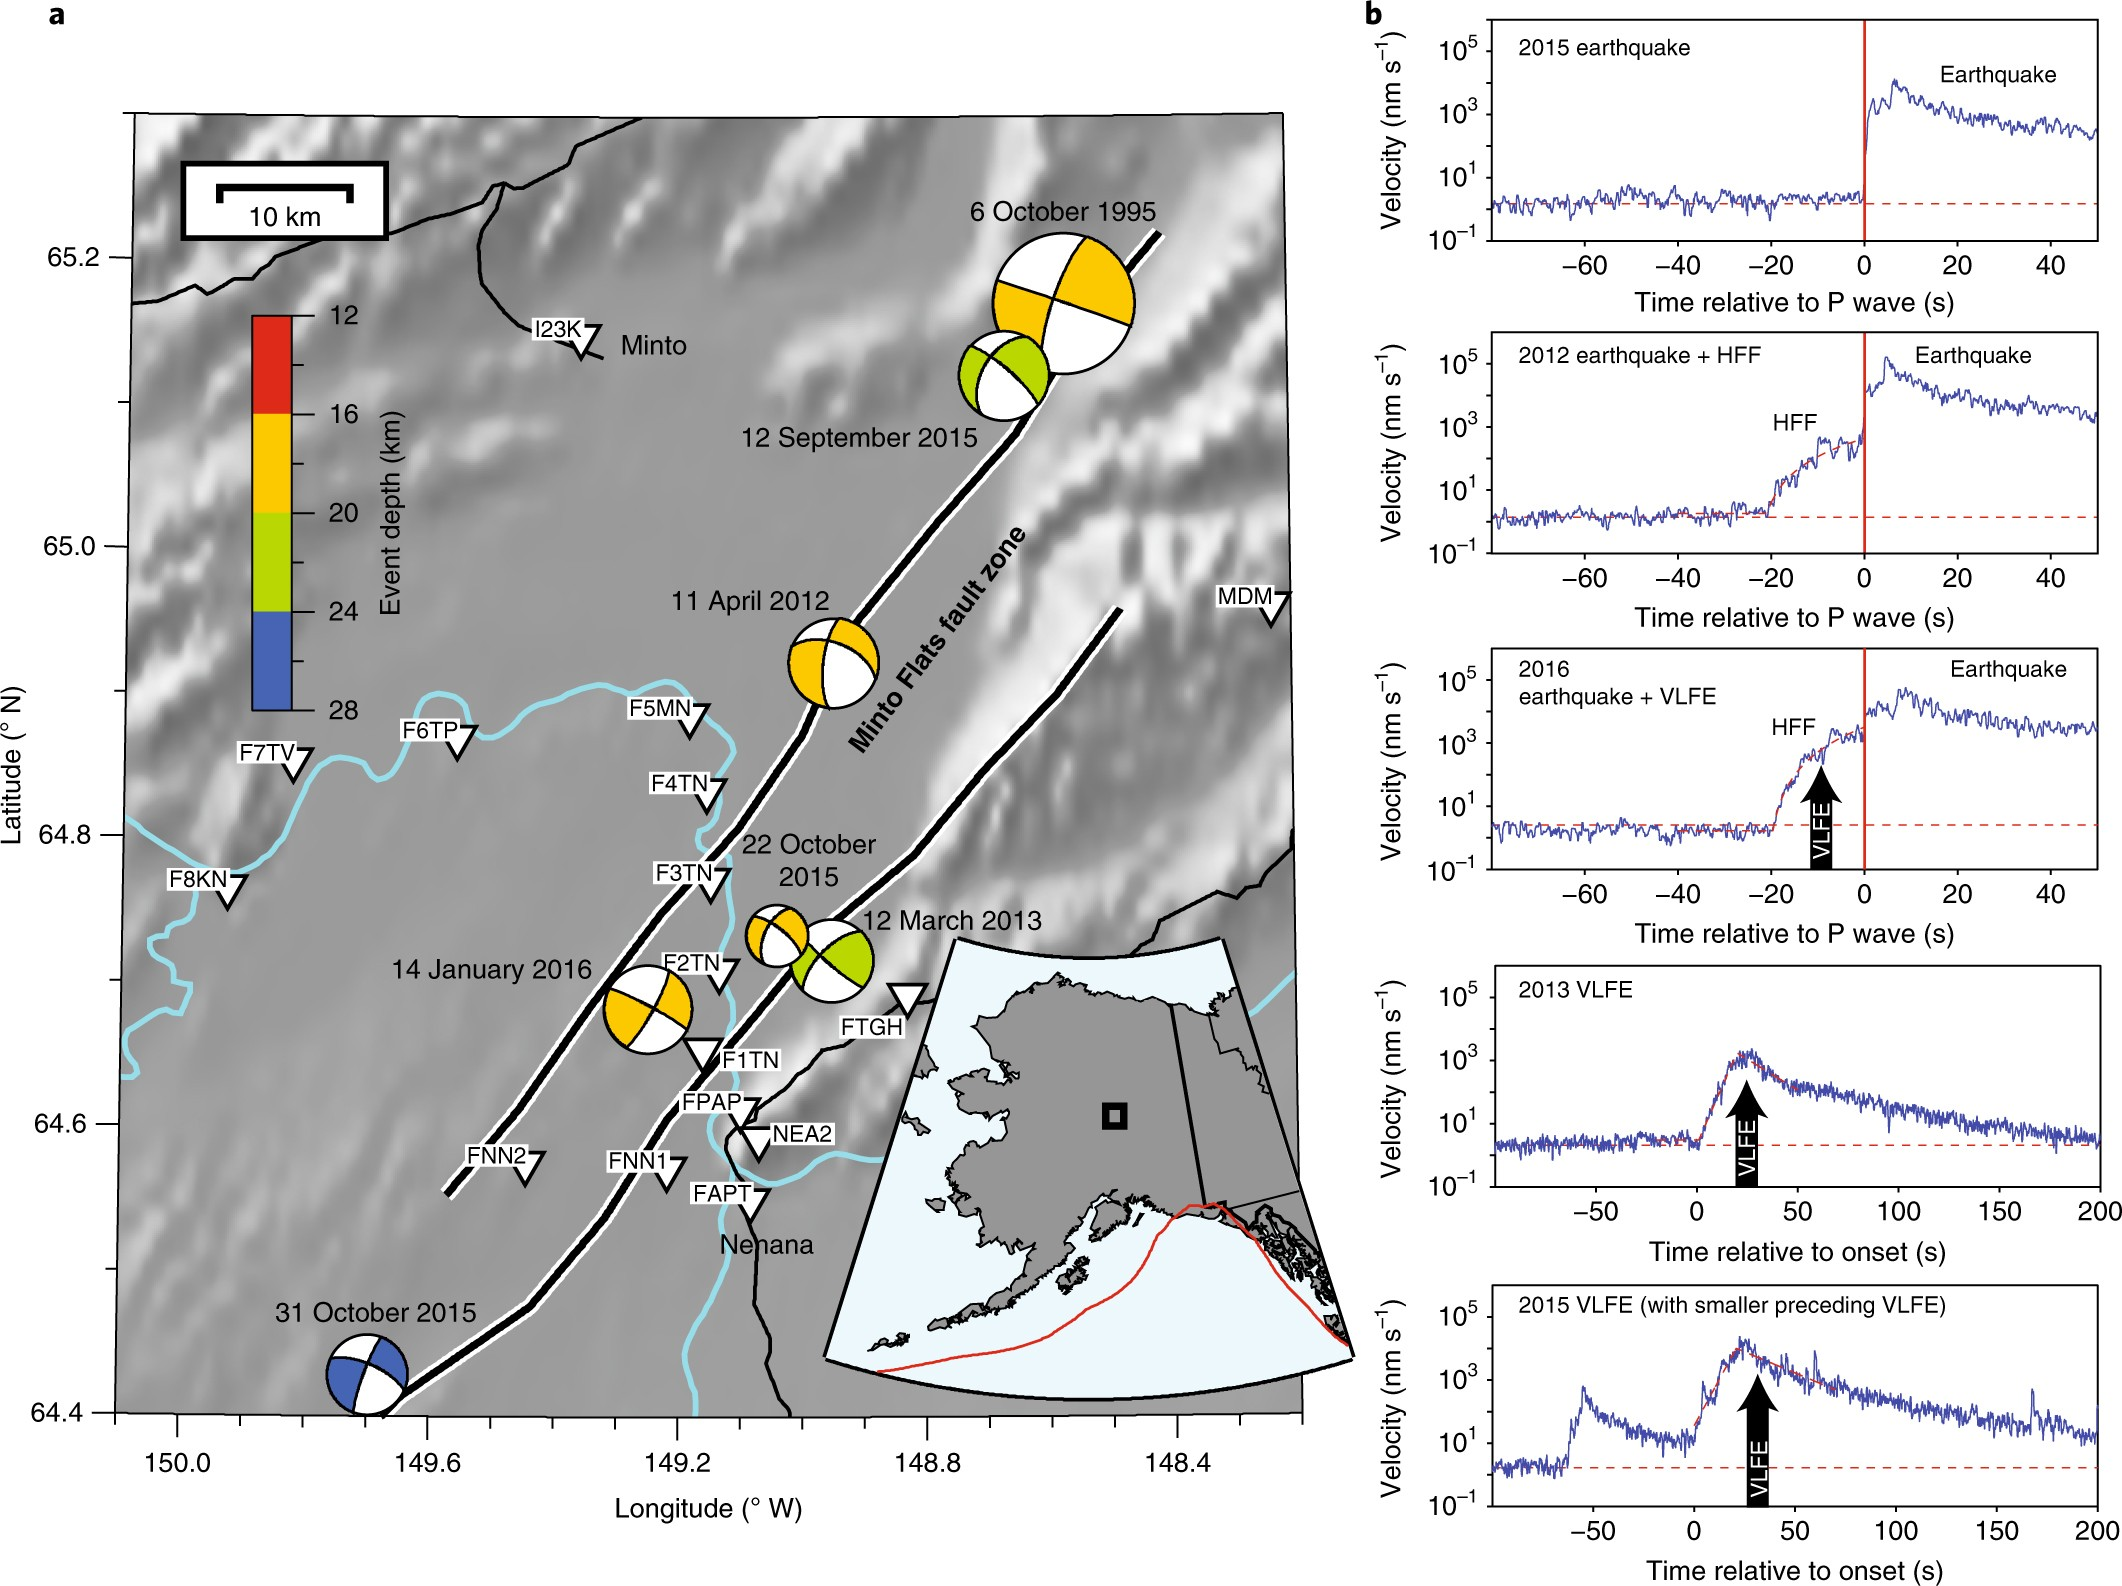 Earthquake Nucleation And Fault Slip Complexity In The Lower Crust Problem 409 Shear Moment Diagrams Strength Of Materials Review Central Alaska Nature Geoscience